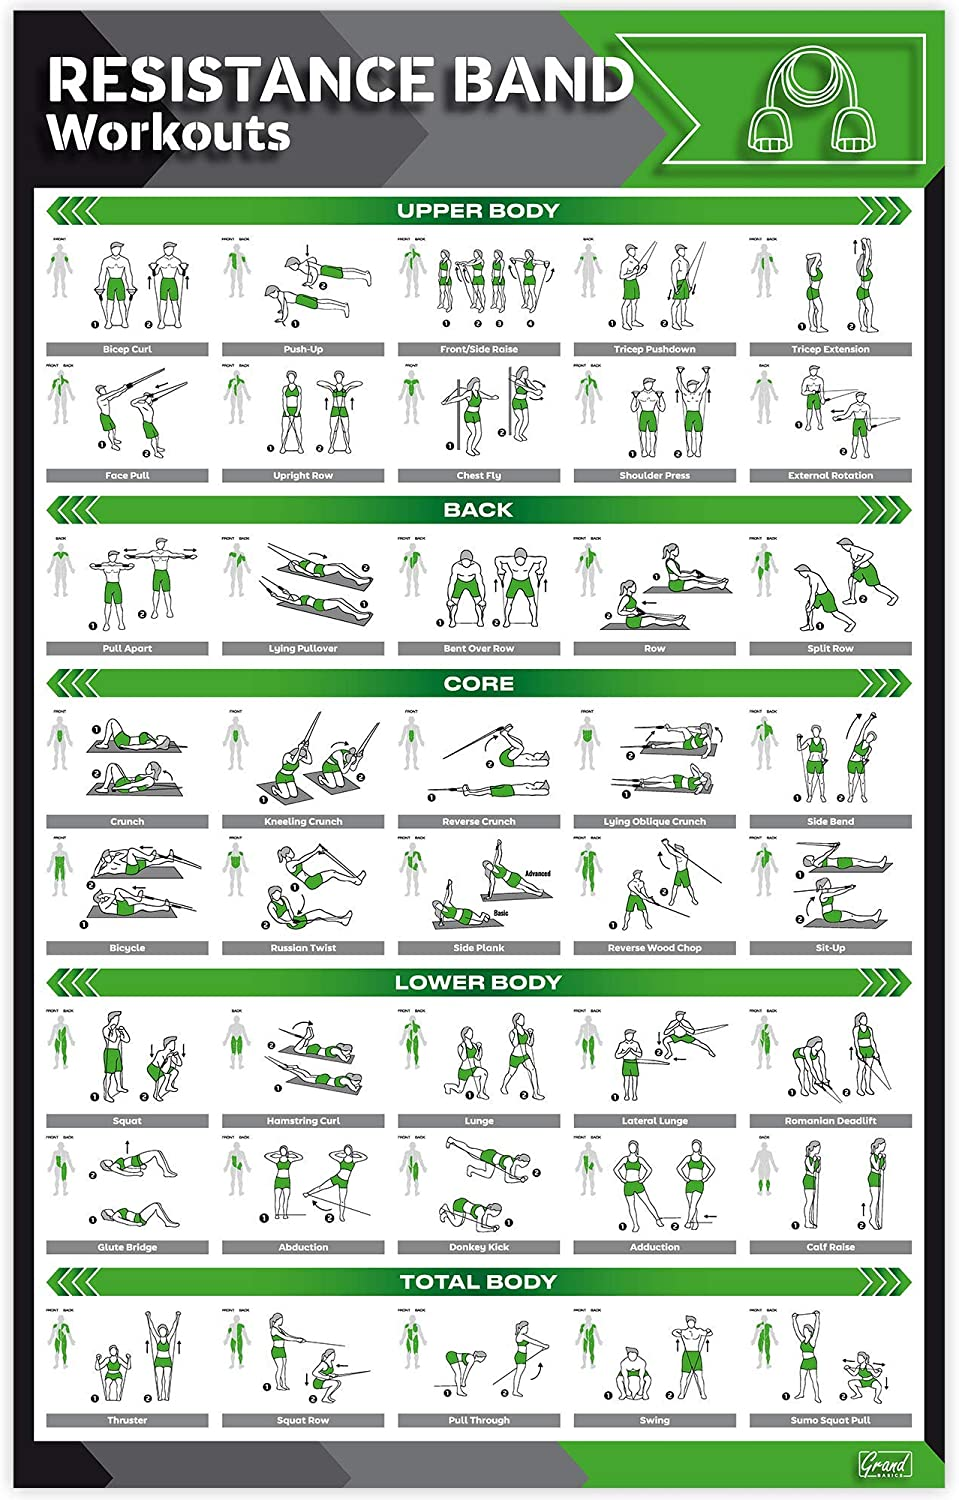 """Laminated Resistance Band Workout Poster Perfect Resistance Band Exercise Poster For Home Gym Large Size 17/"""" x 27/"""" Exercise Chart Contain 40 Illustrated Exercises For Resistance Bands"""